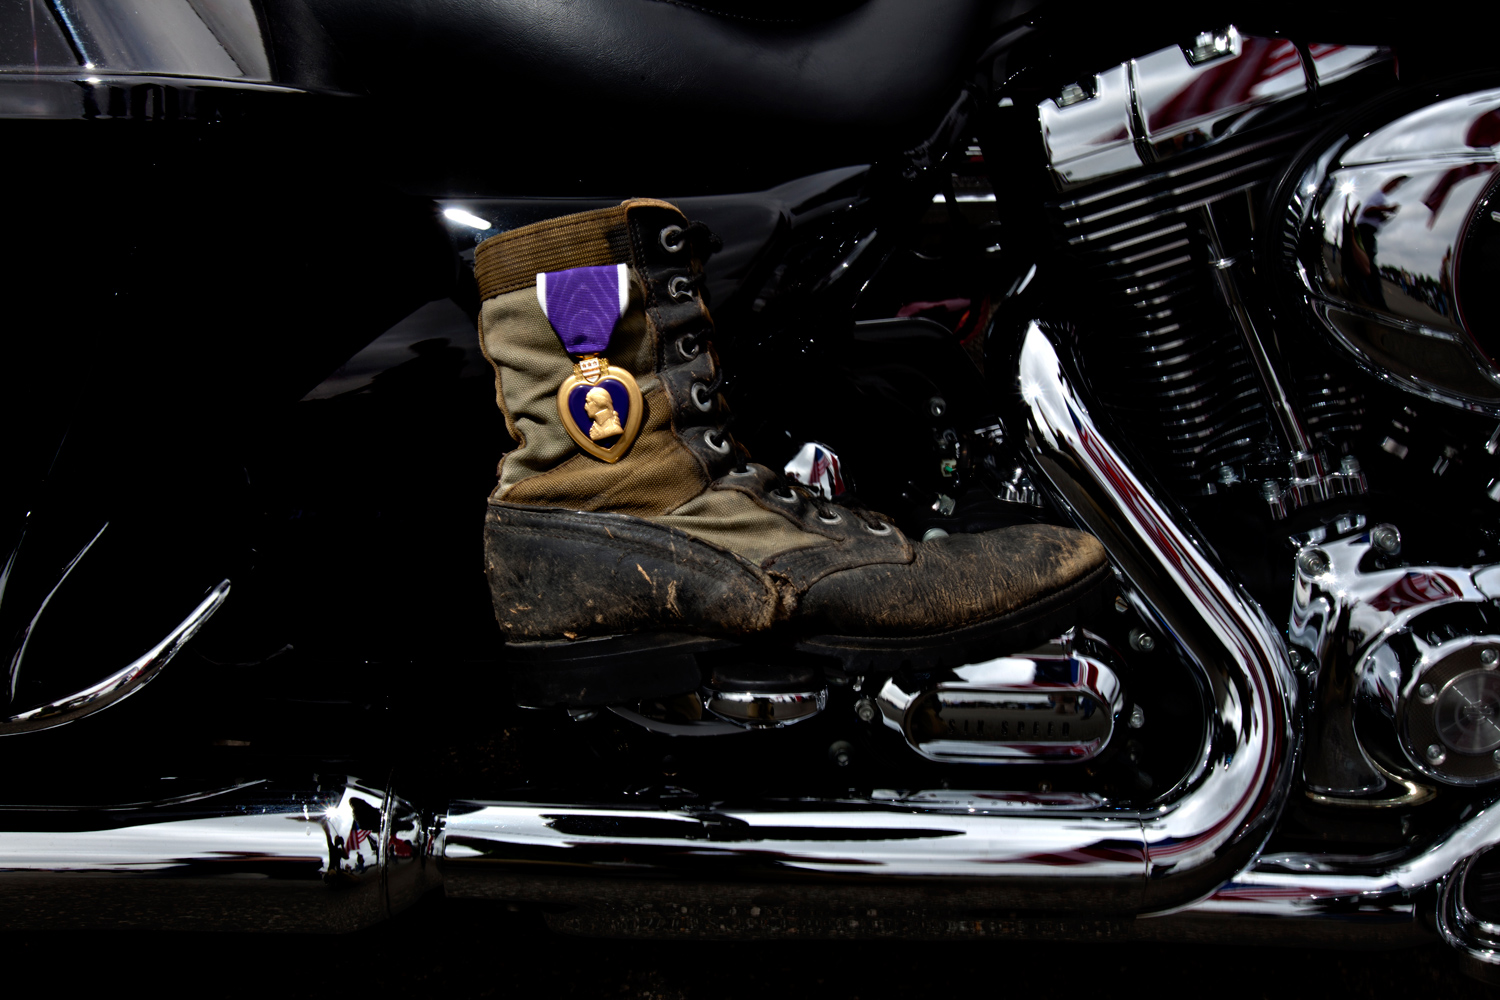 A purple heart pinned to a bikers boot at the start of the Rolling Thunder rally  Washington, DC. Sunday, May 29, 2011.